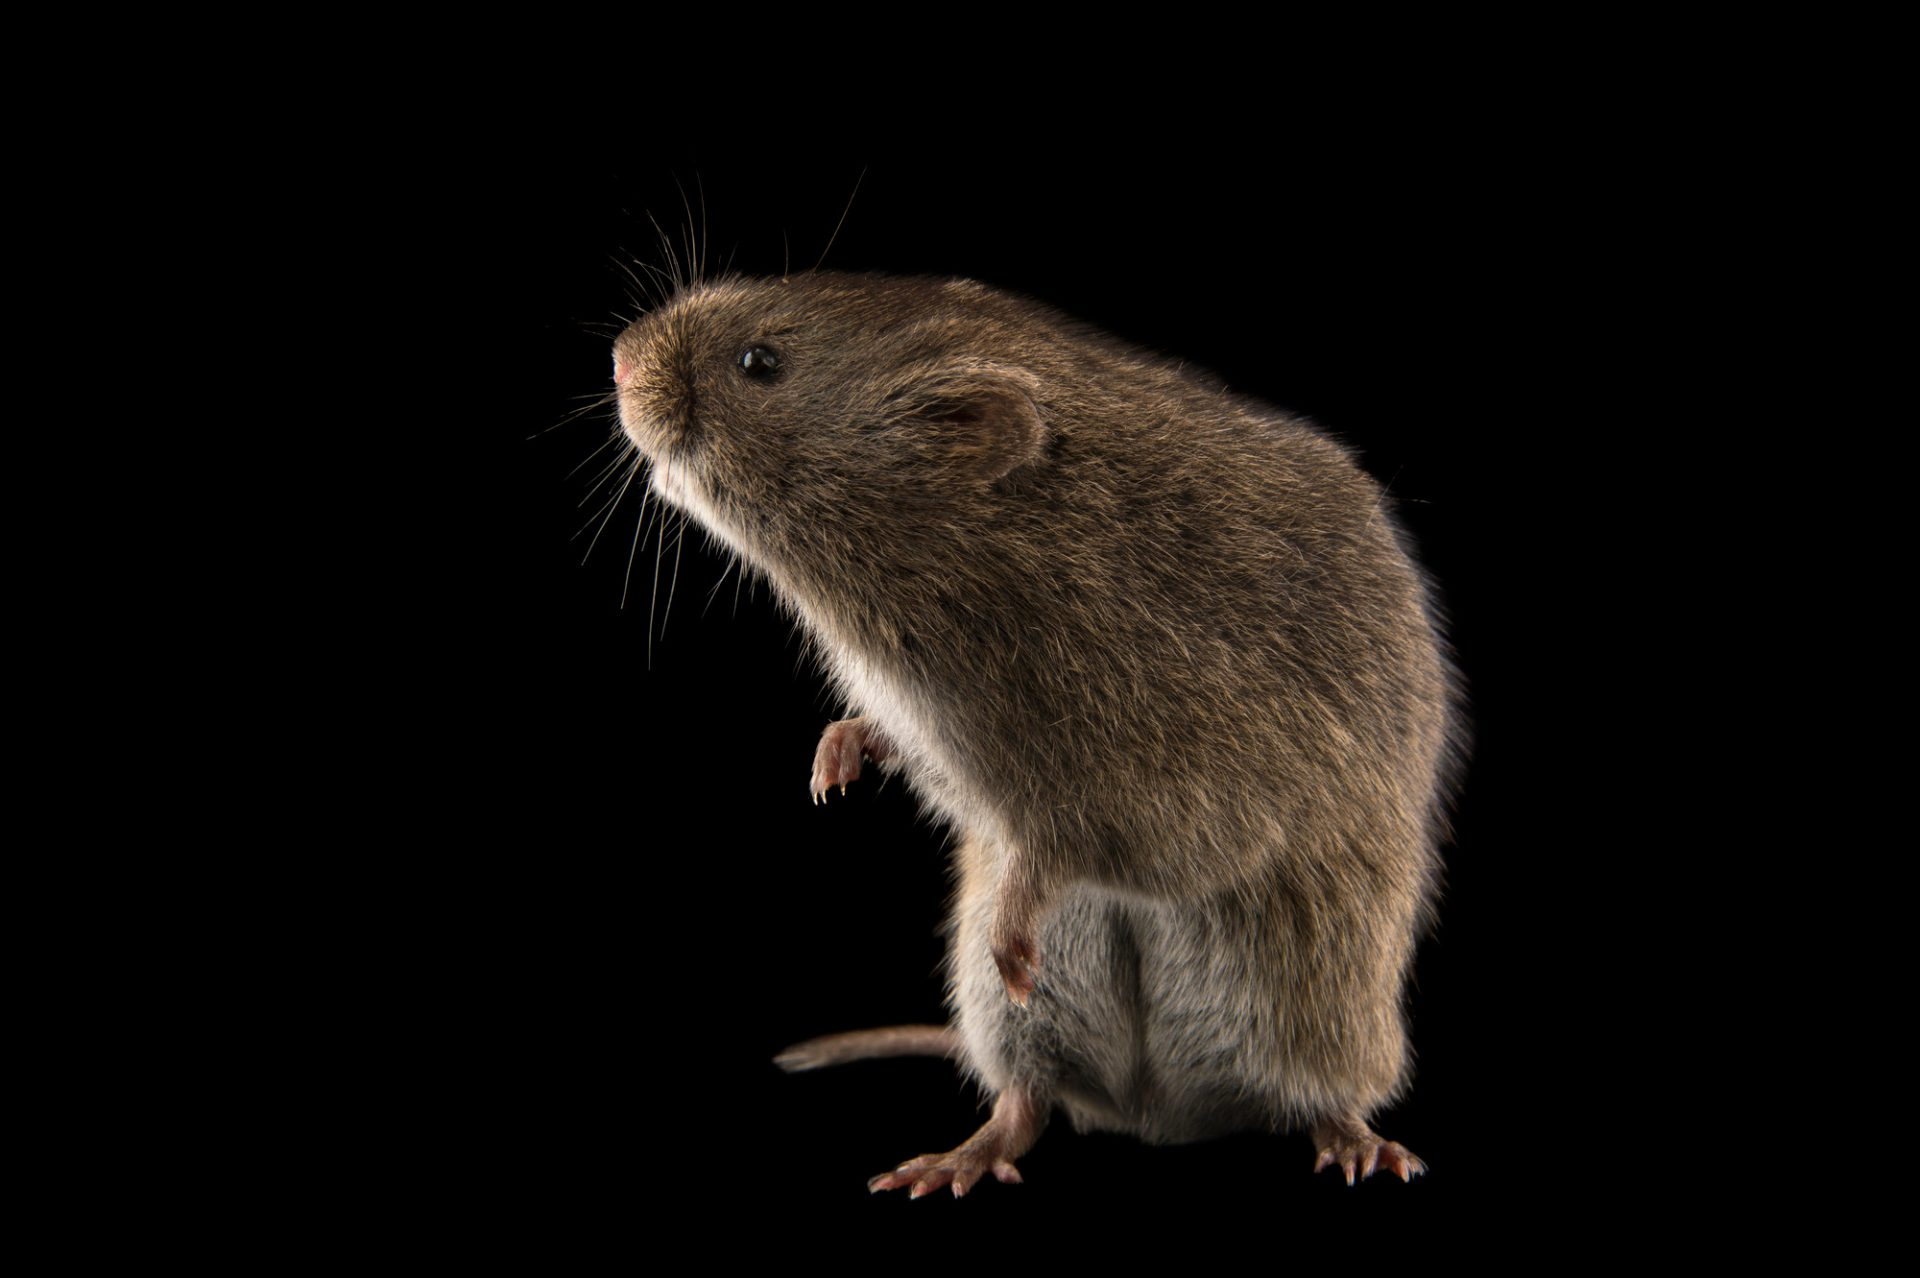 Photo: Reed vole (Microtus fortis) at the Plzen Zoo in the Czech Republic.